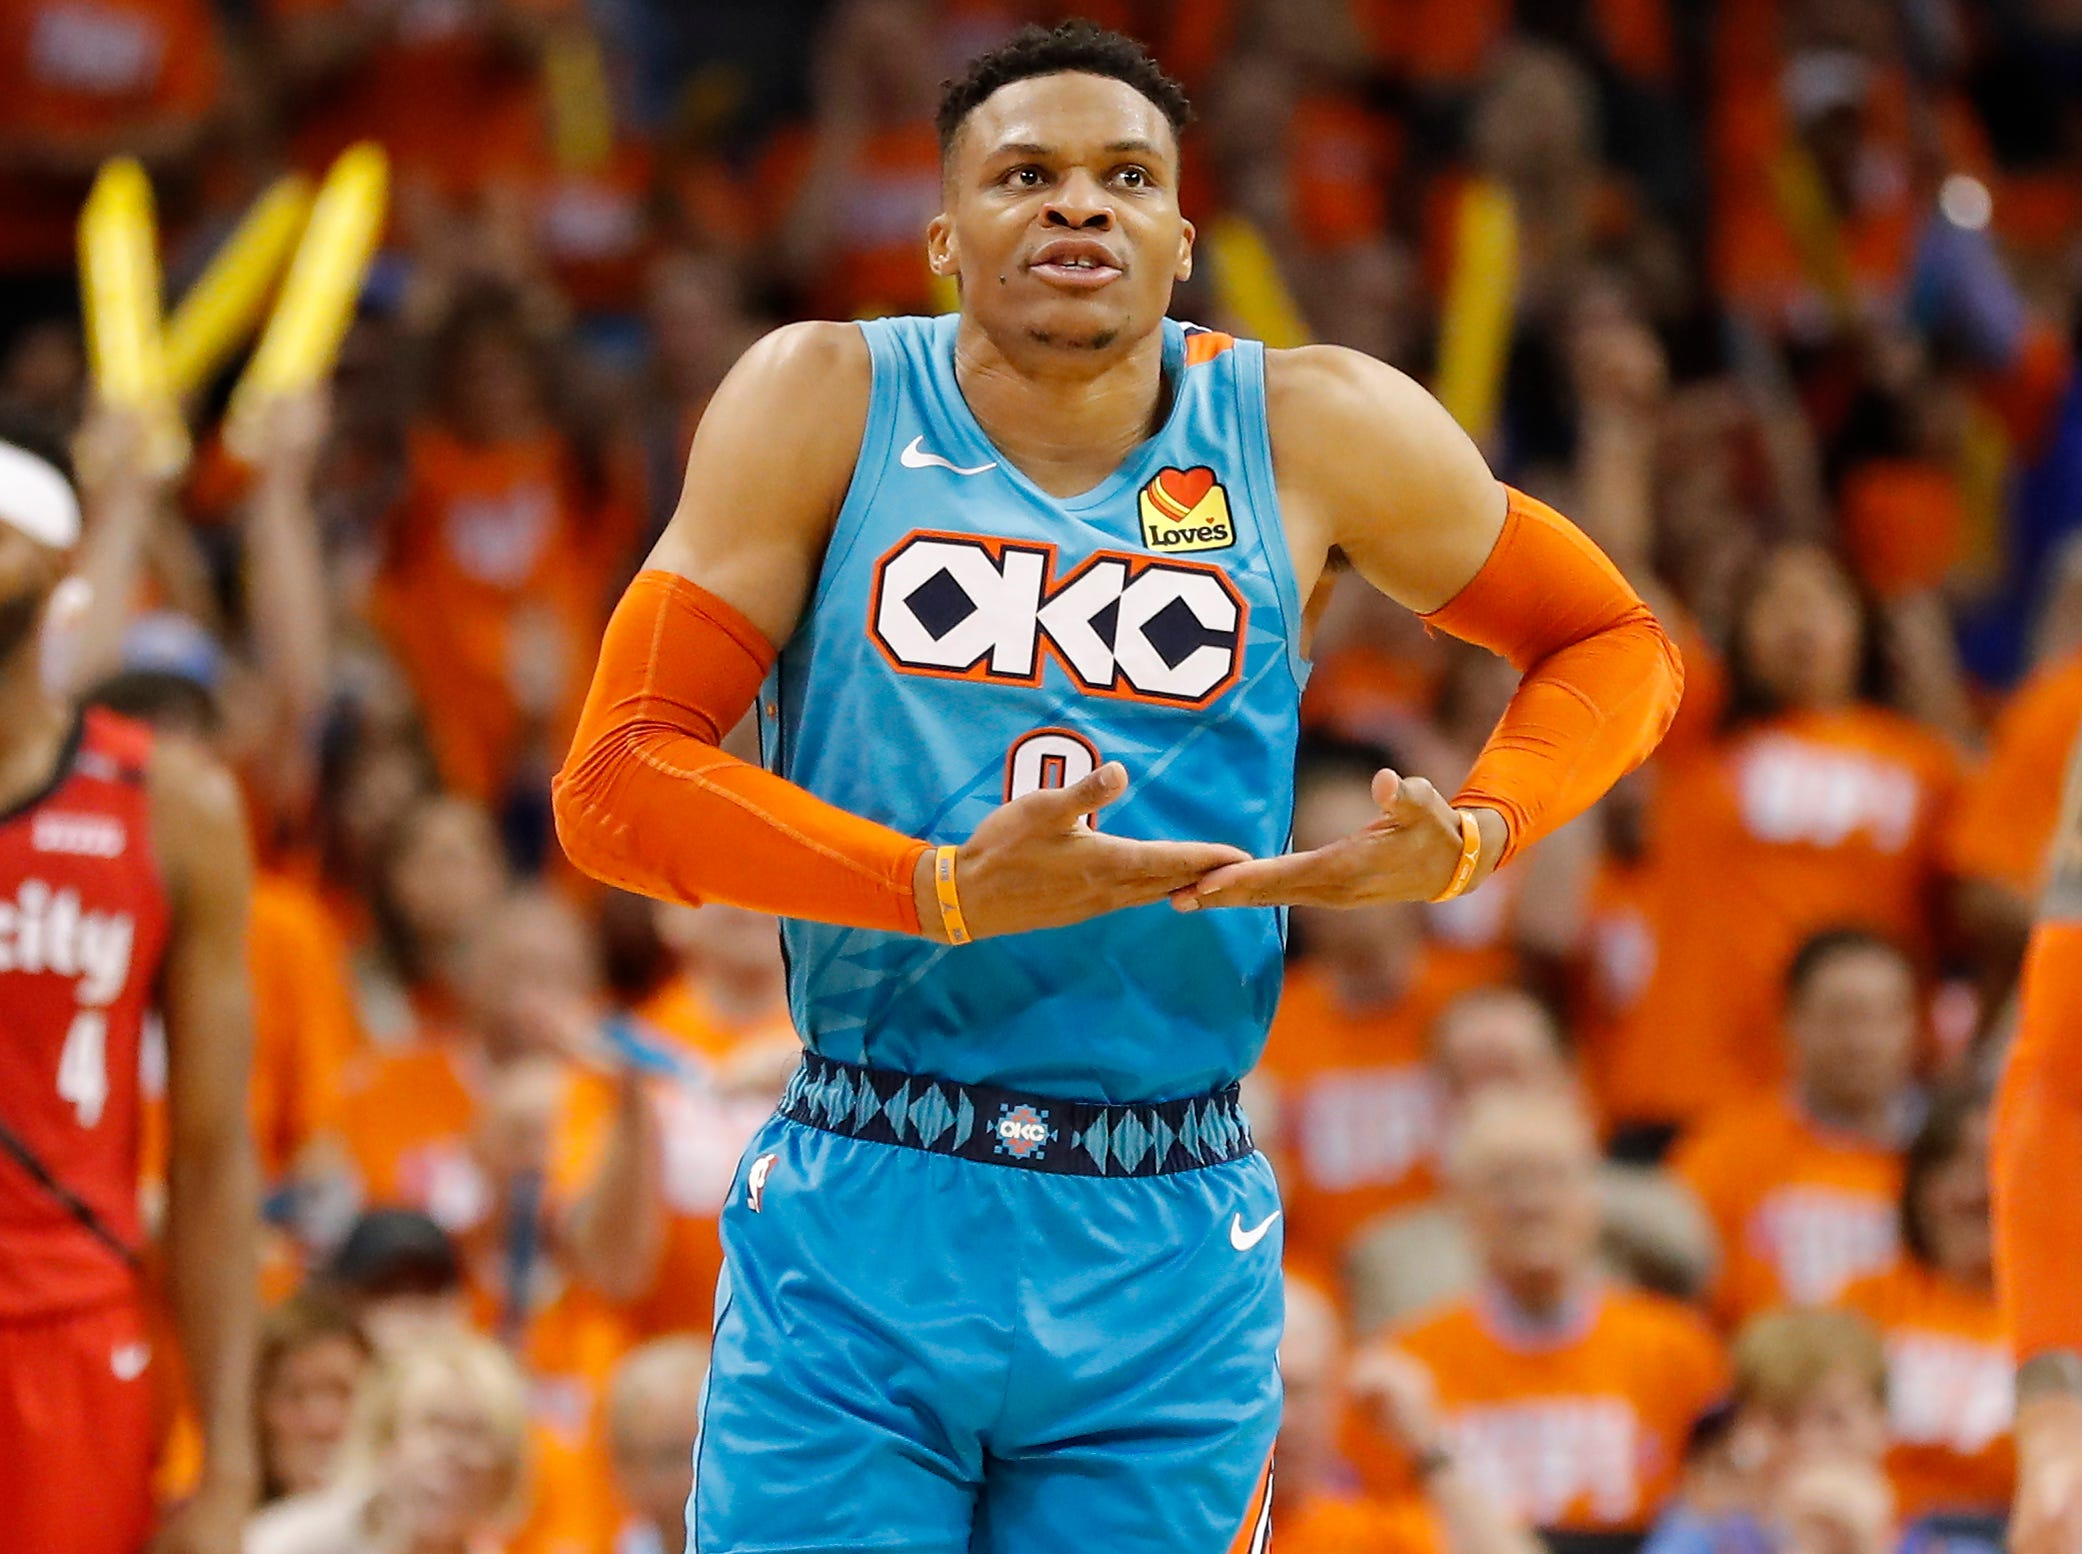 April 19: Thunder guard Russell Westbrook rocks the baby after a big second-half bucket during Game 3 against the Trail Blazers.